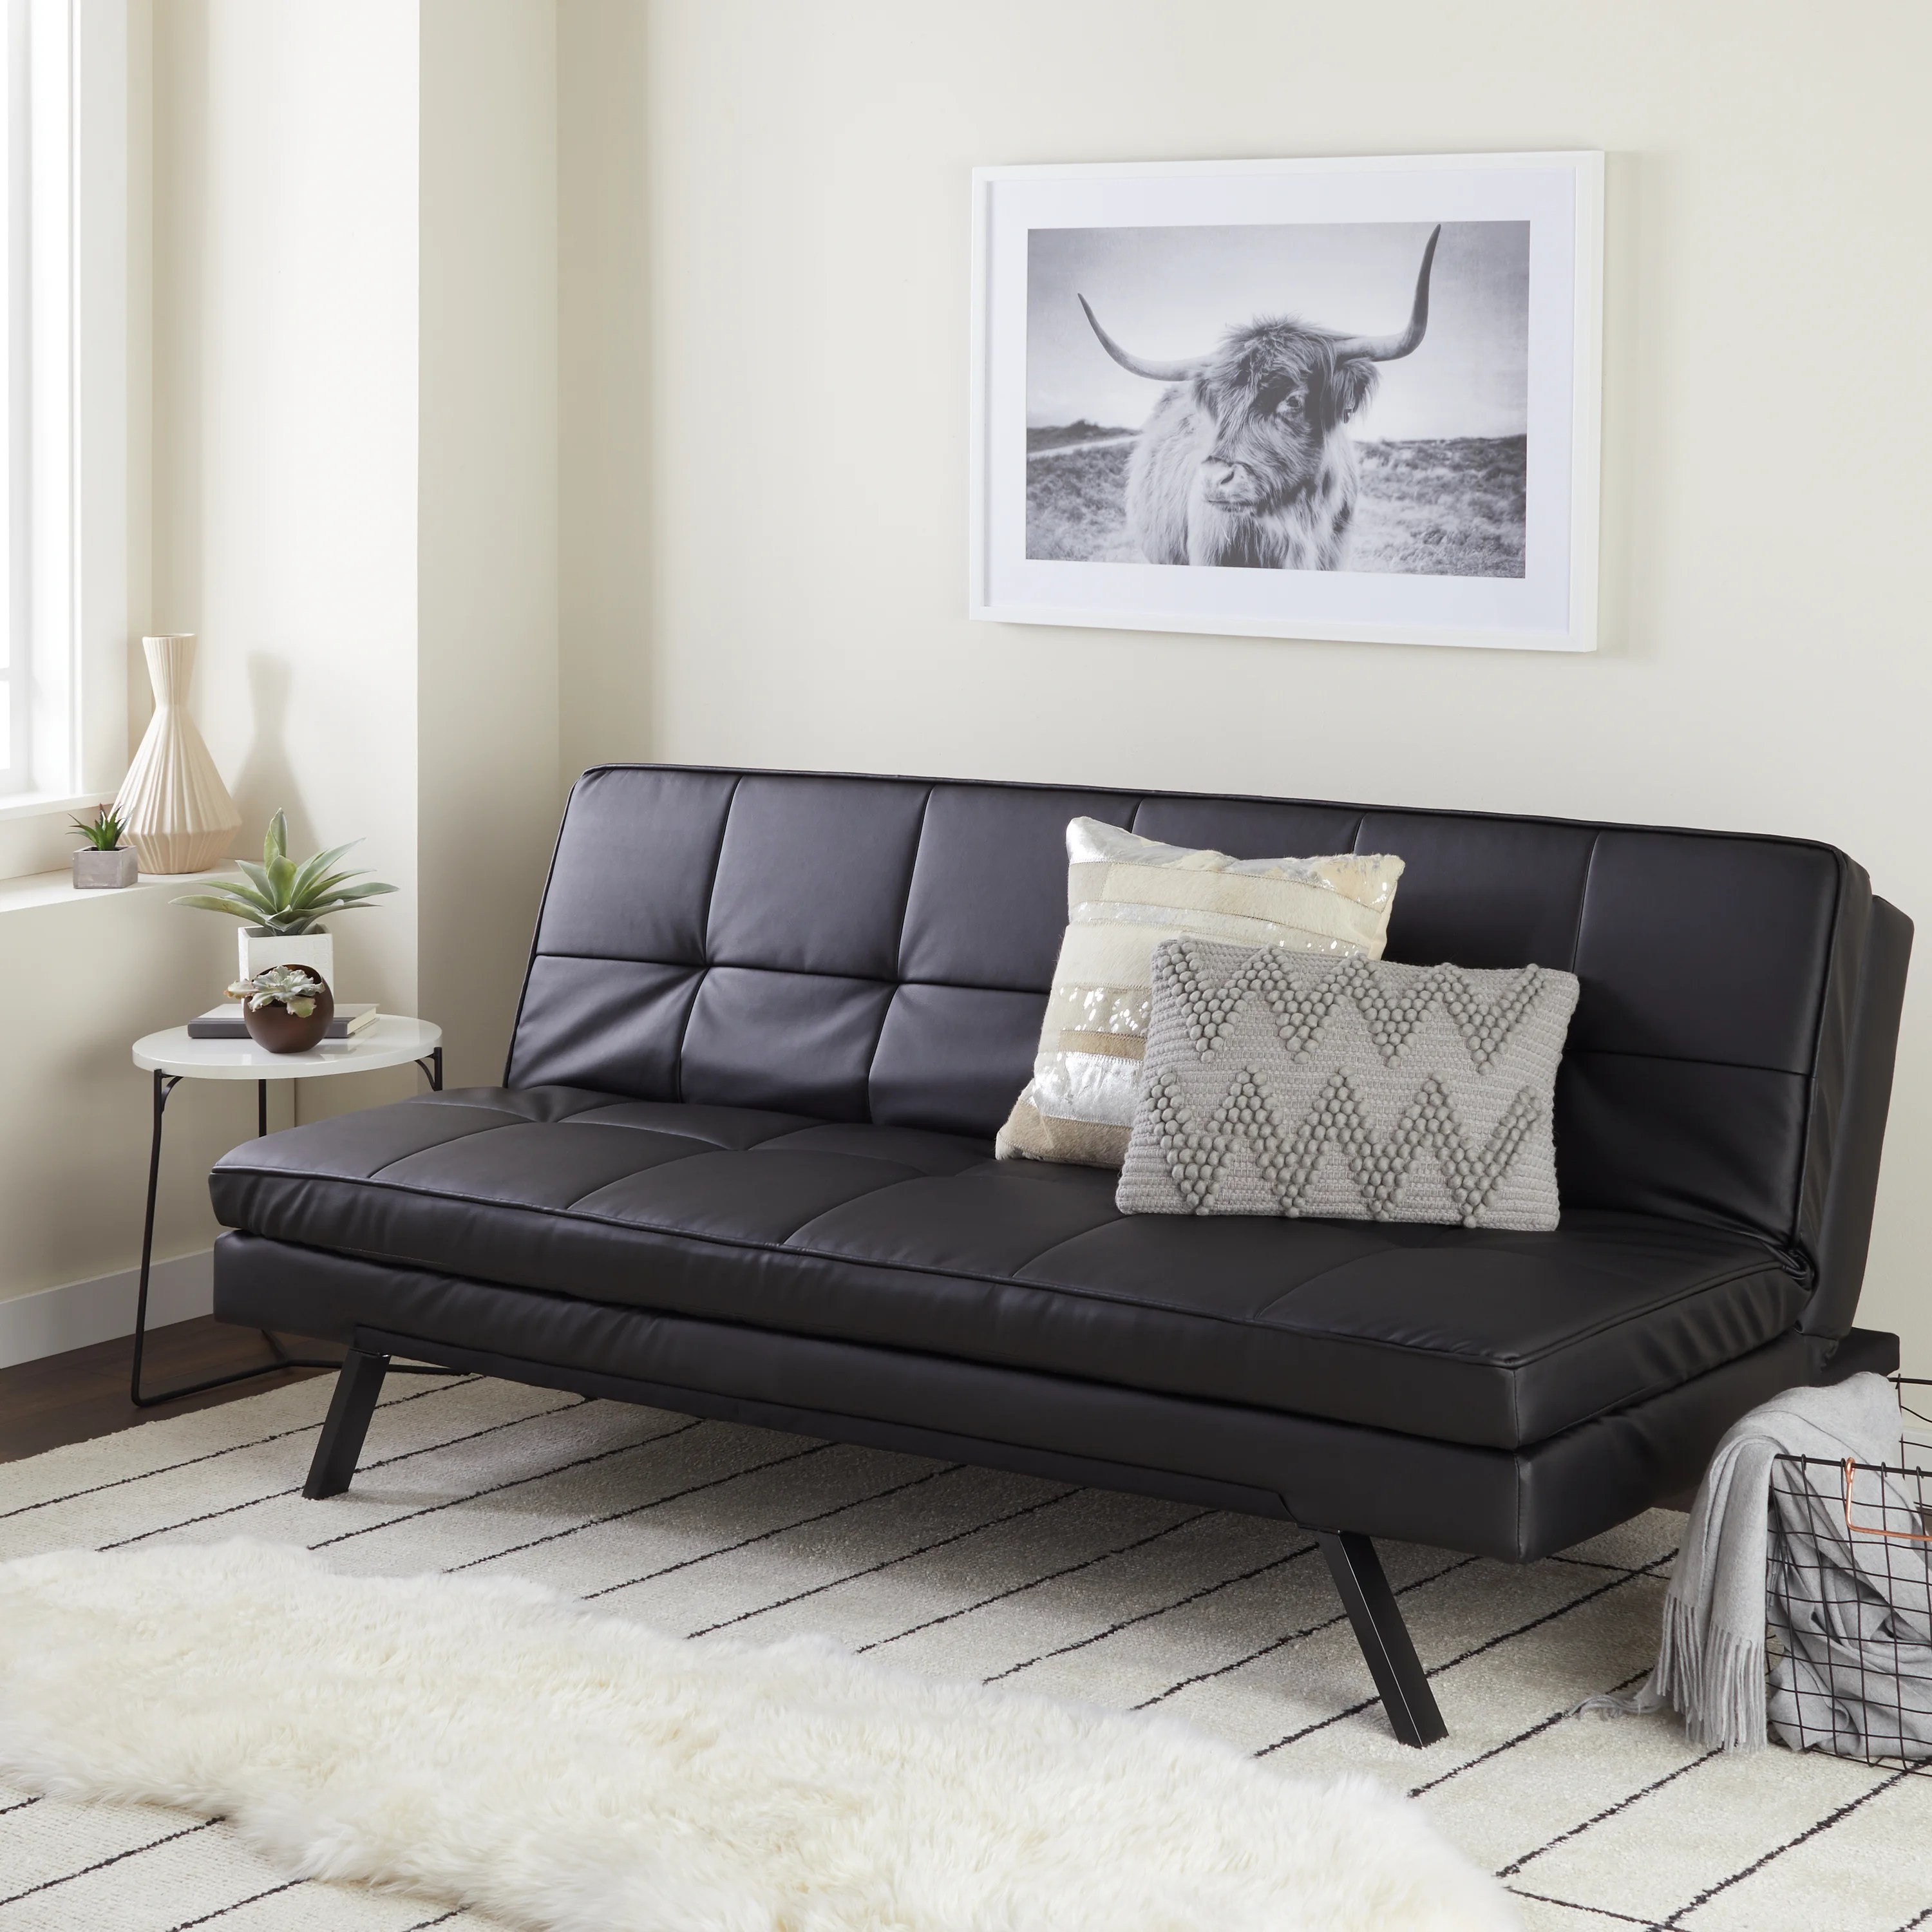 Couches Sleeper Abbyson Newport Faux Leather Futon Sleeper Sofa